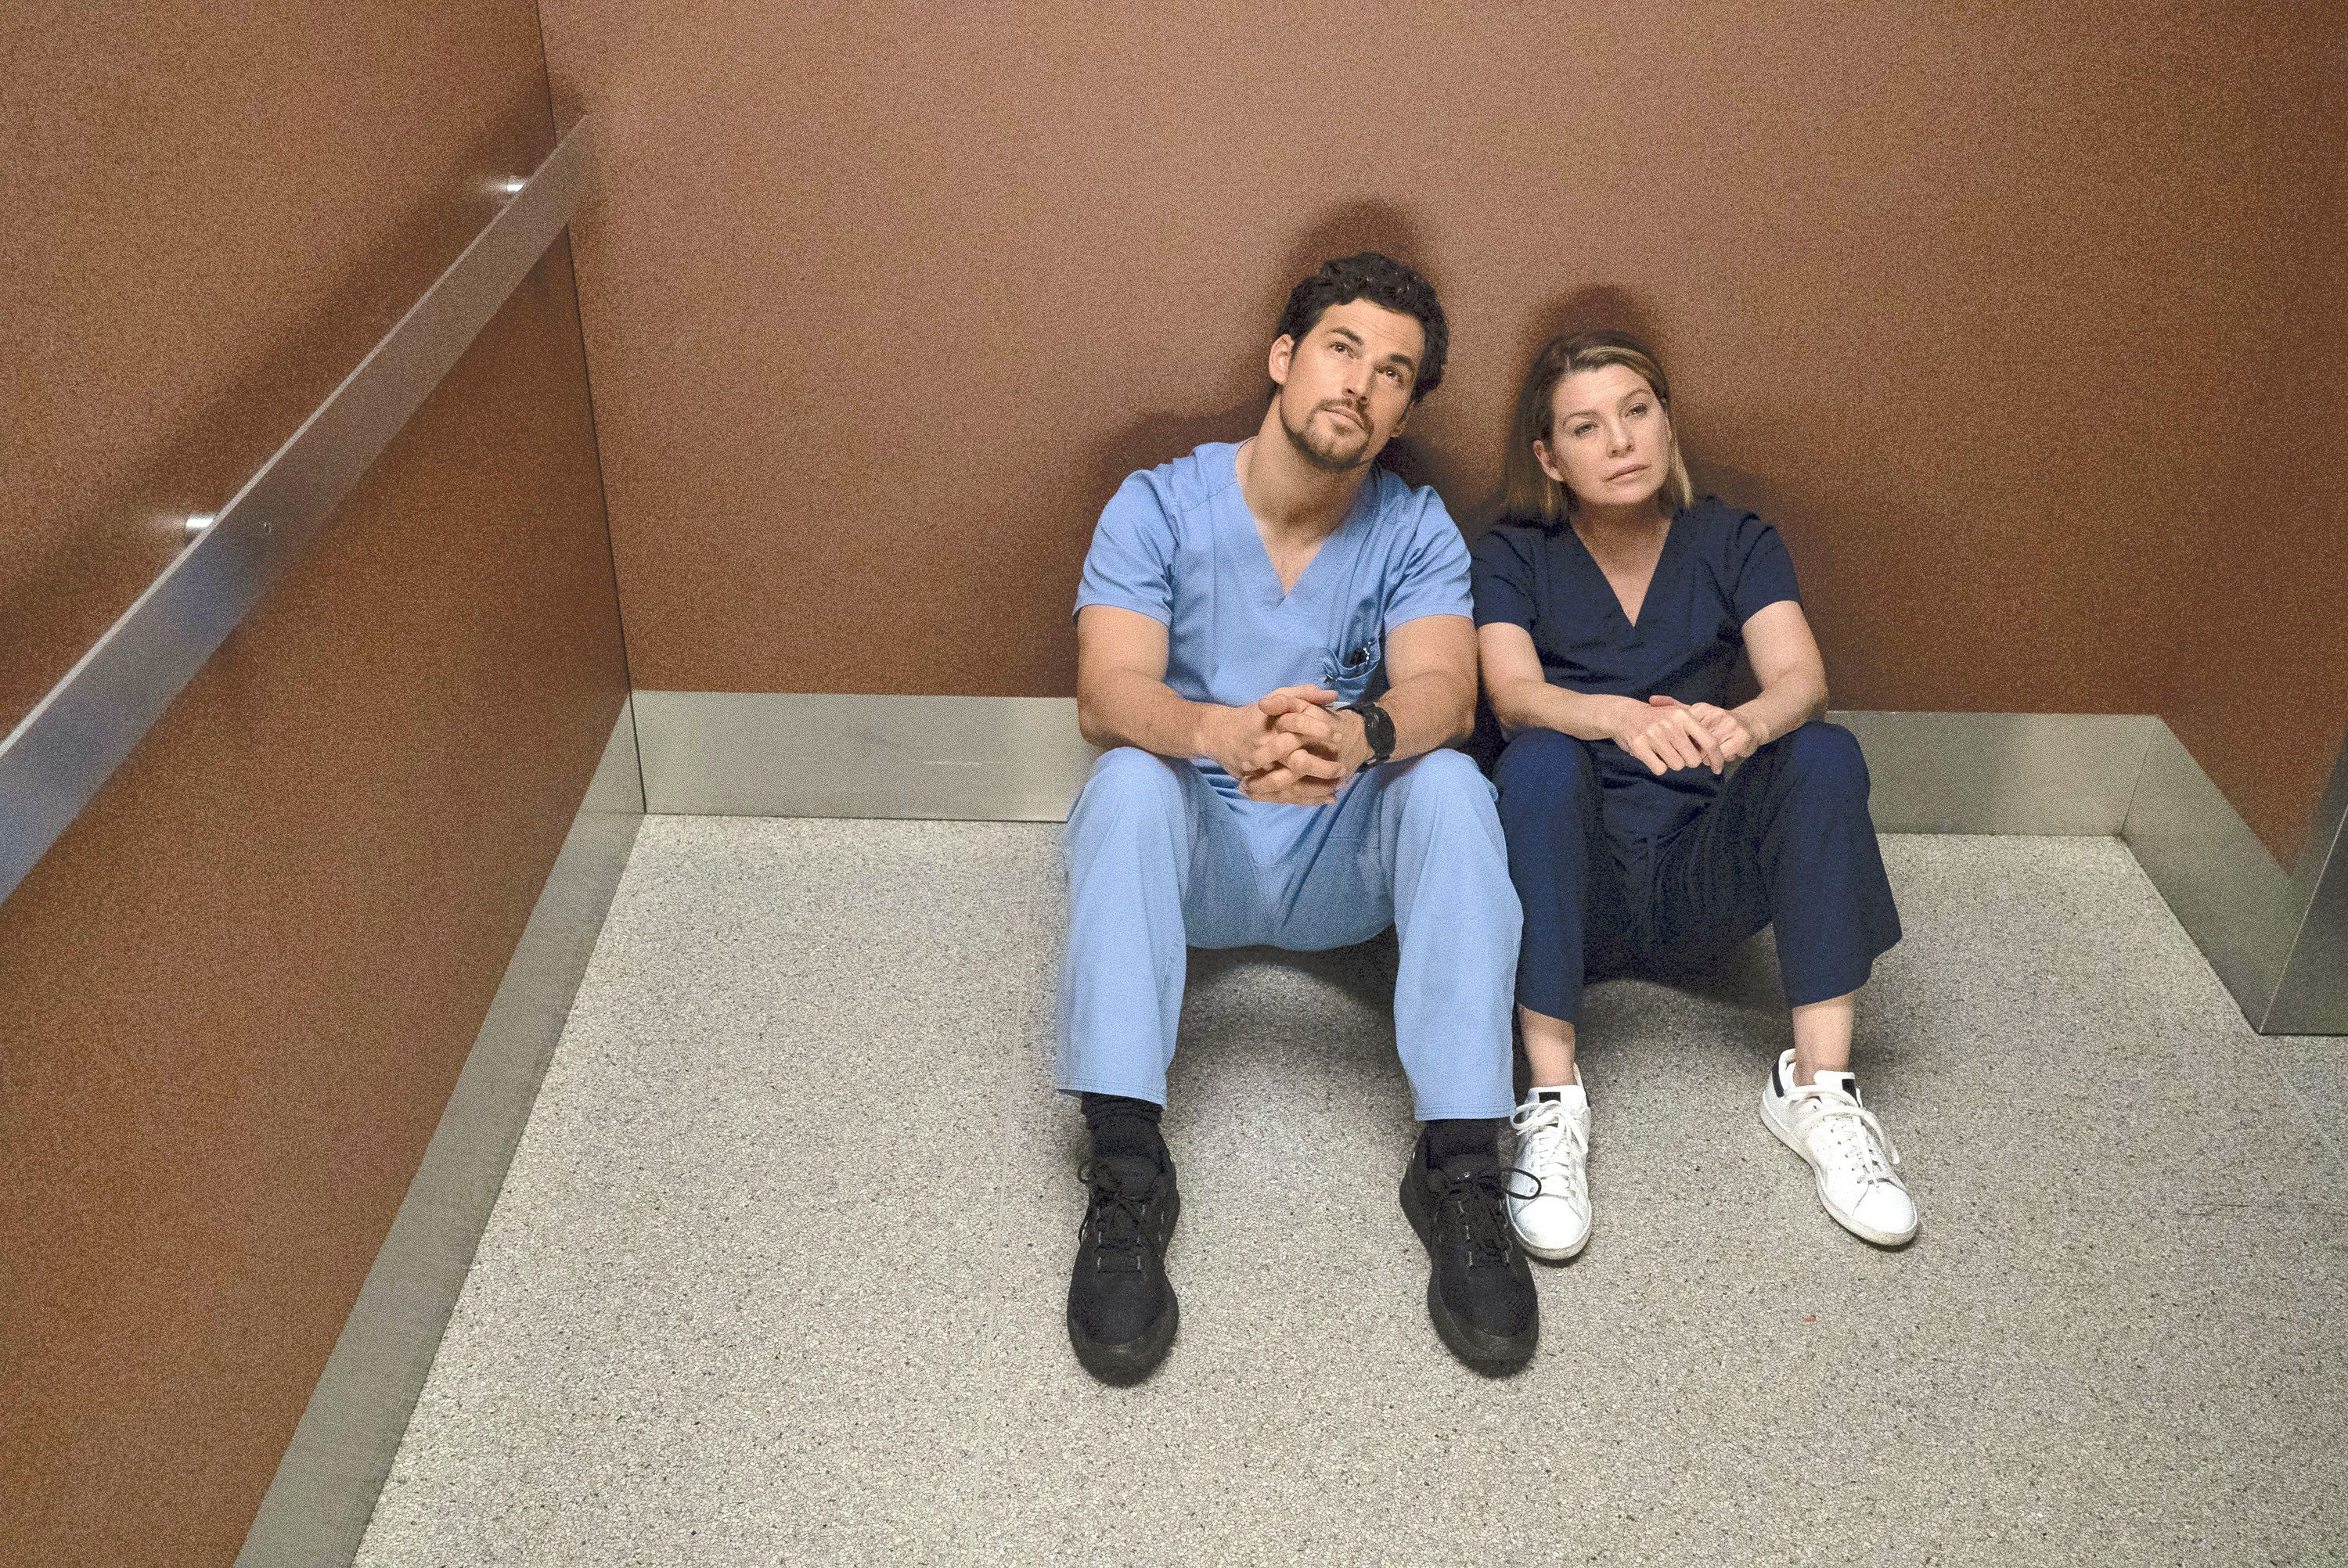 Greys Anatomy Season 16 Spoilers Air Date Cast News And More